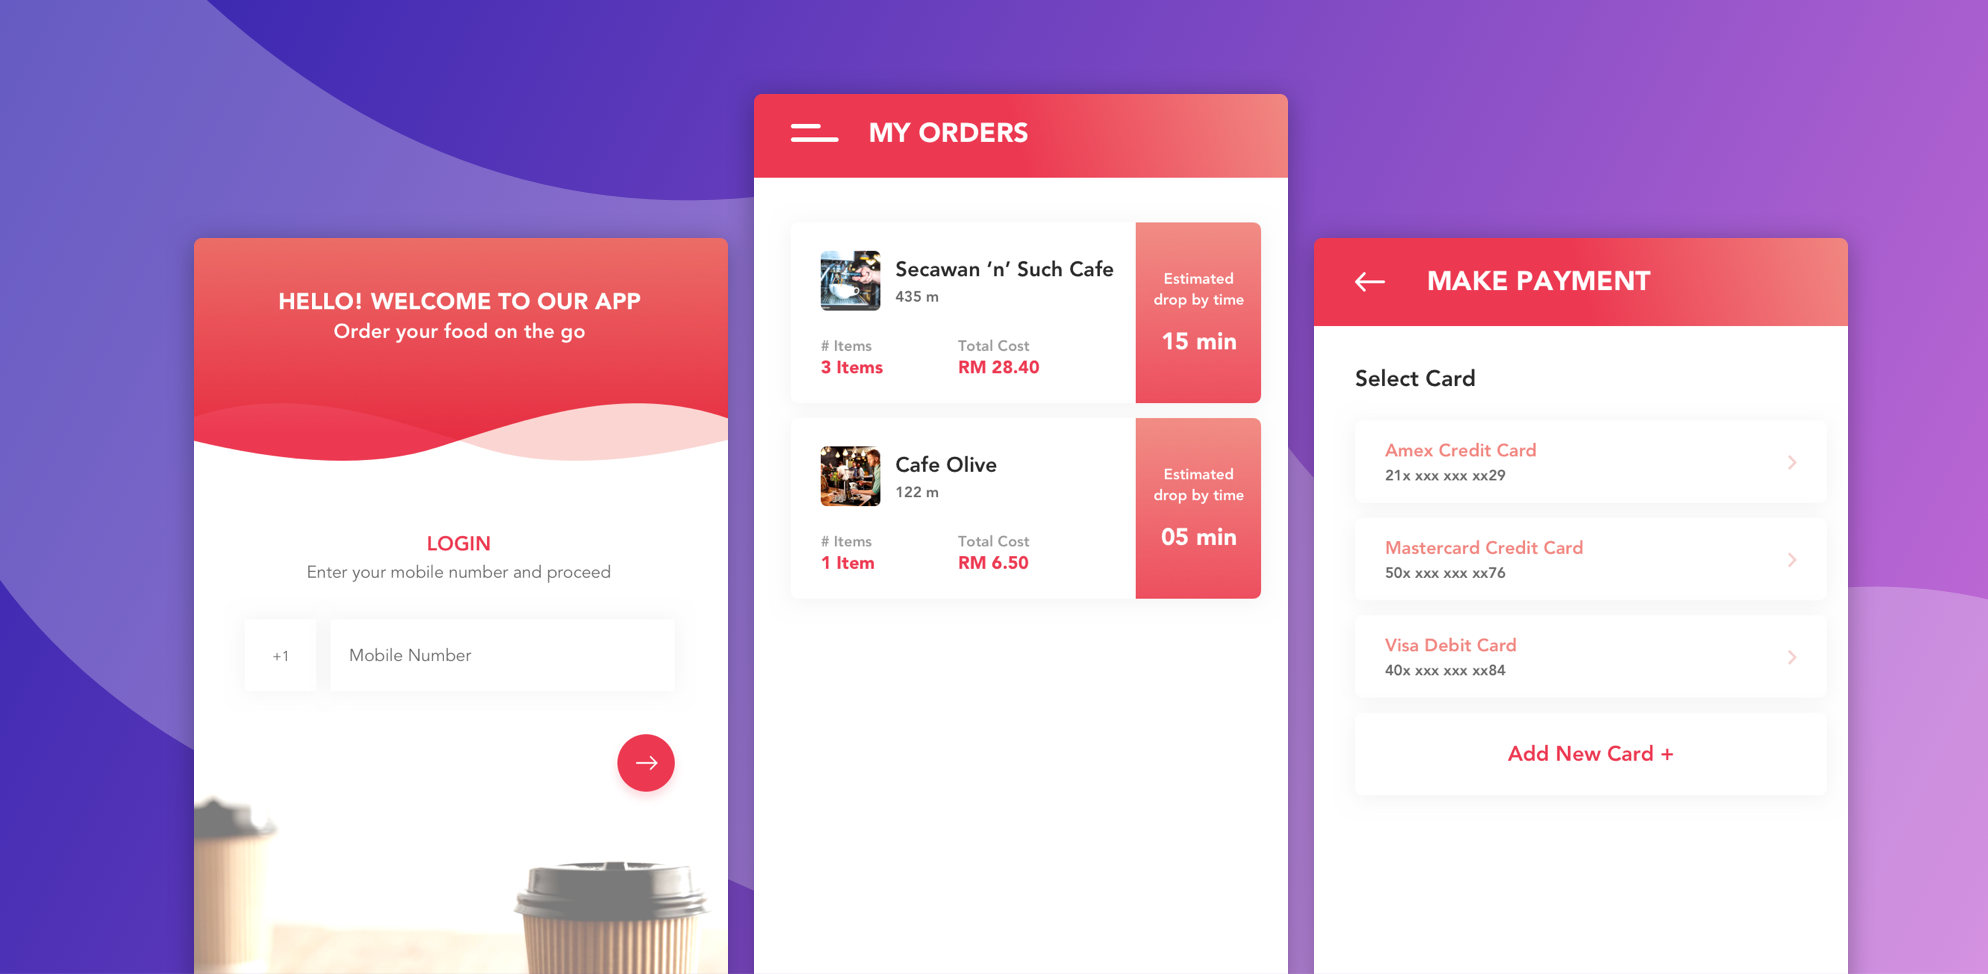 Your Food Delivery App: Is The UX Design Edible To The Eye?